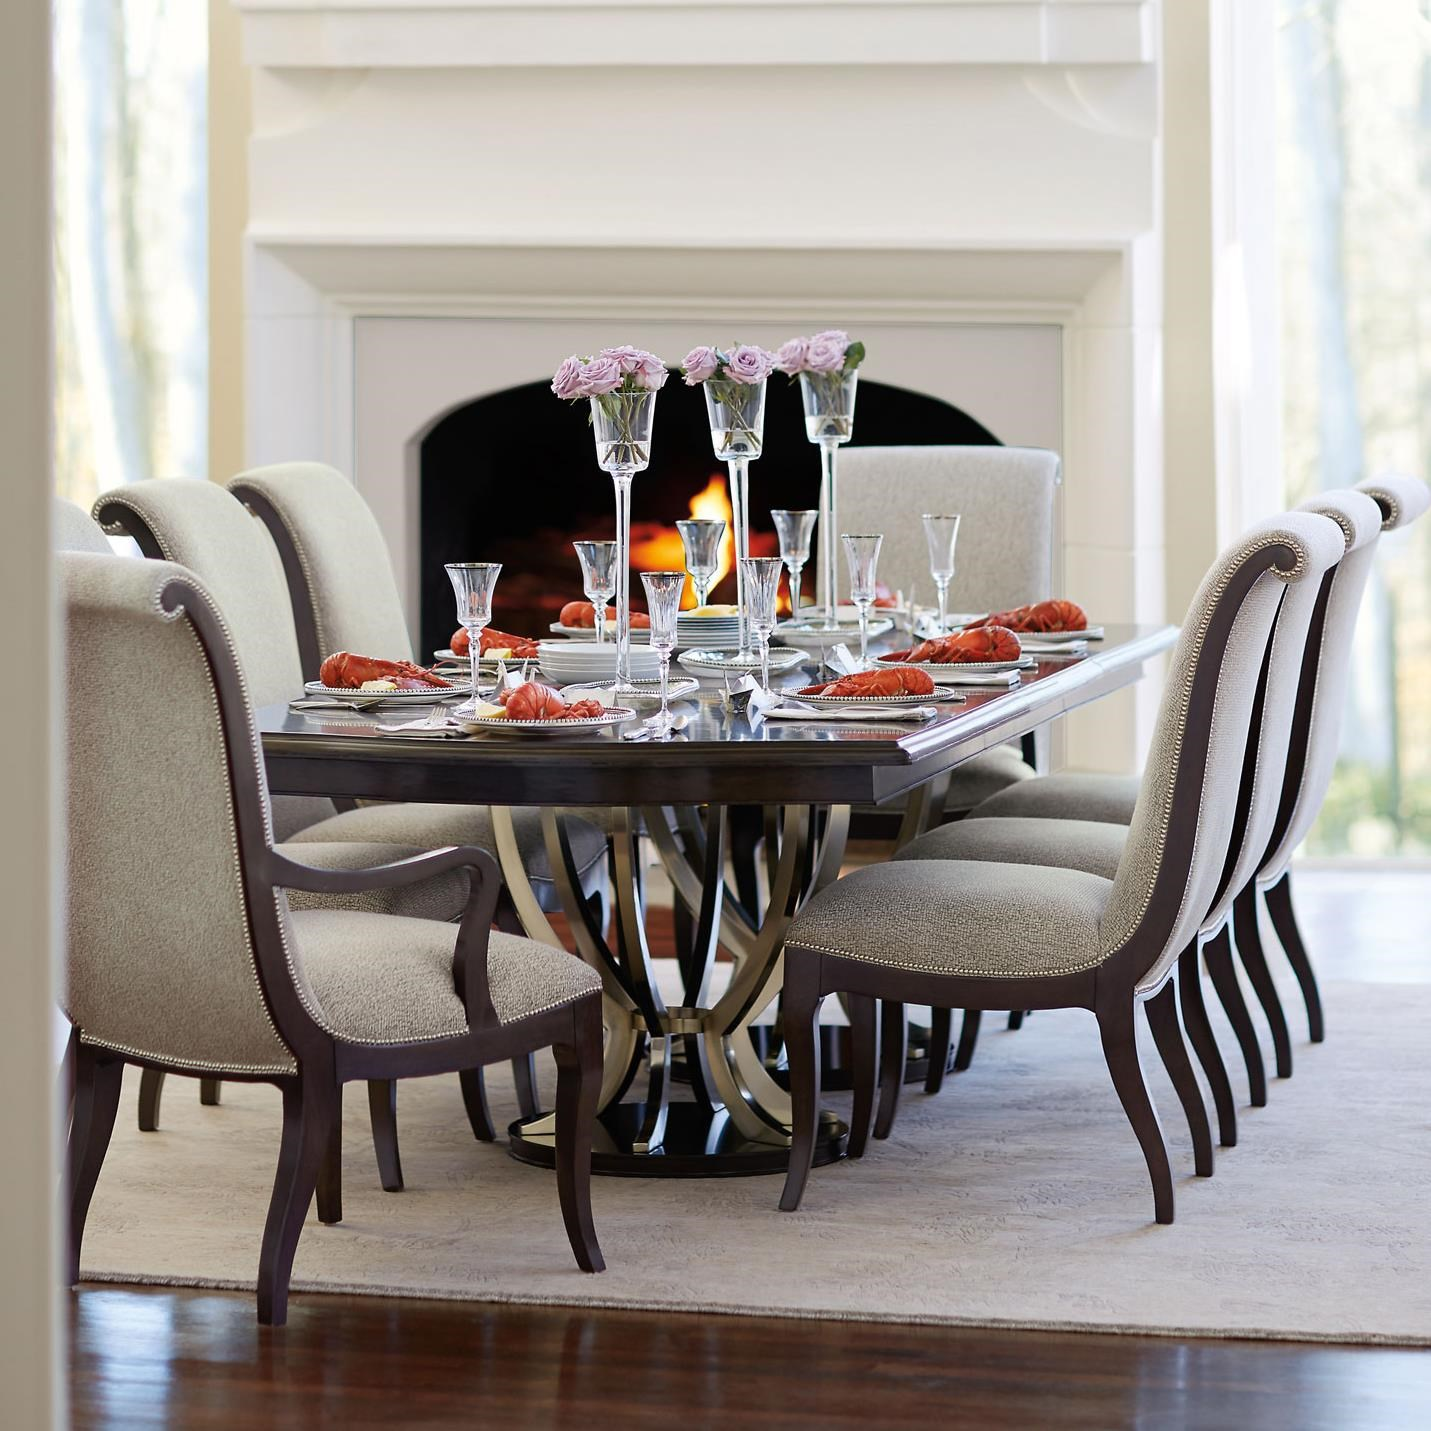 Merveilleux Bernhardt Miramont9 Piece Dining Table And Chair Set ...